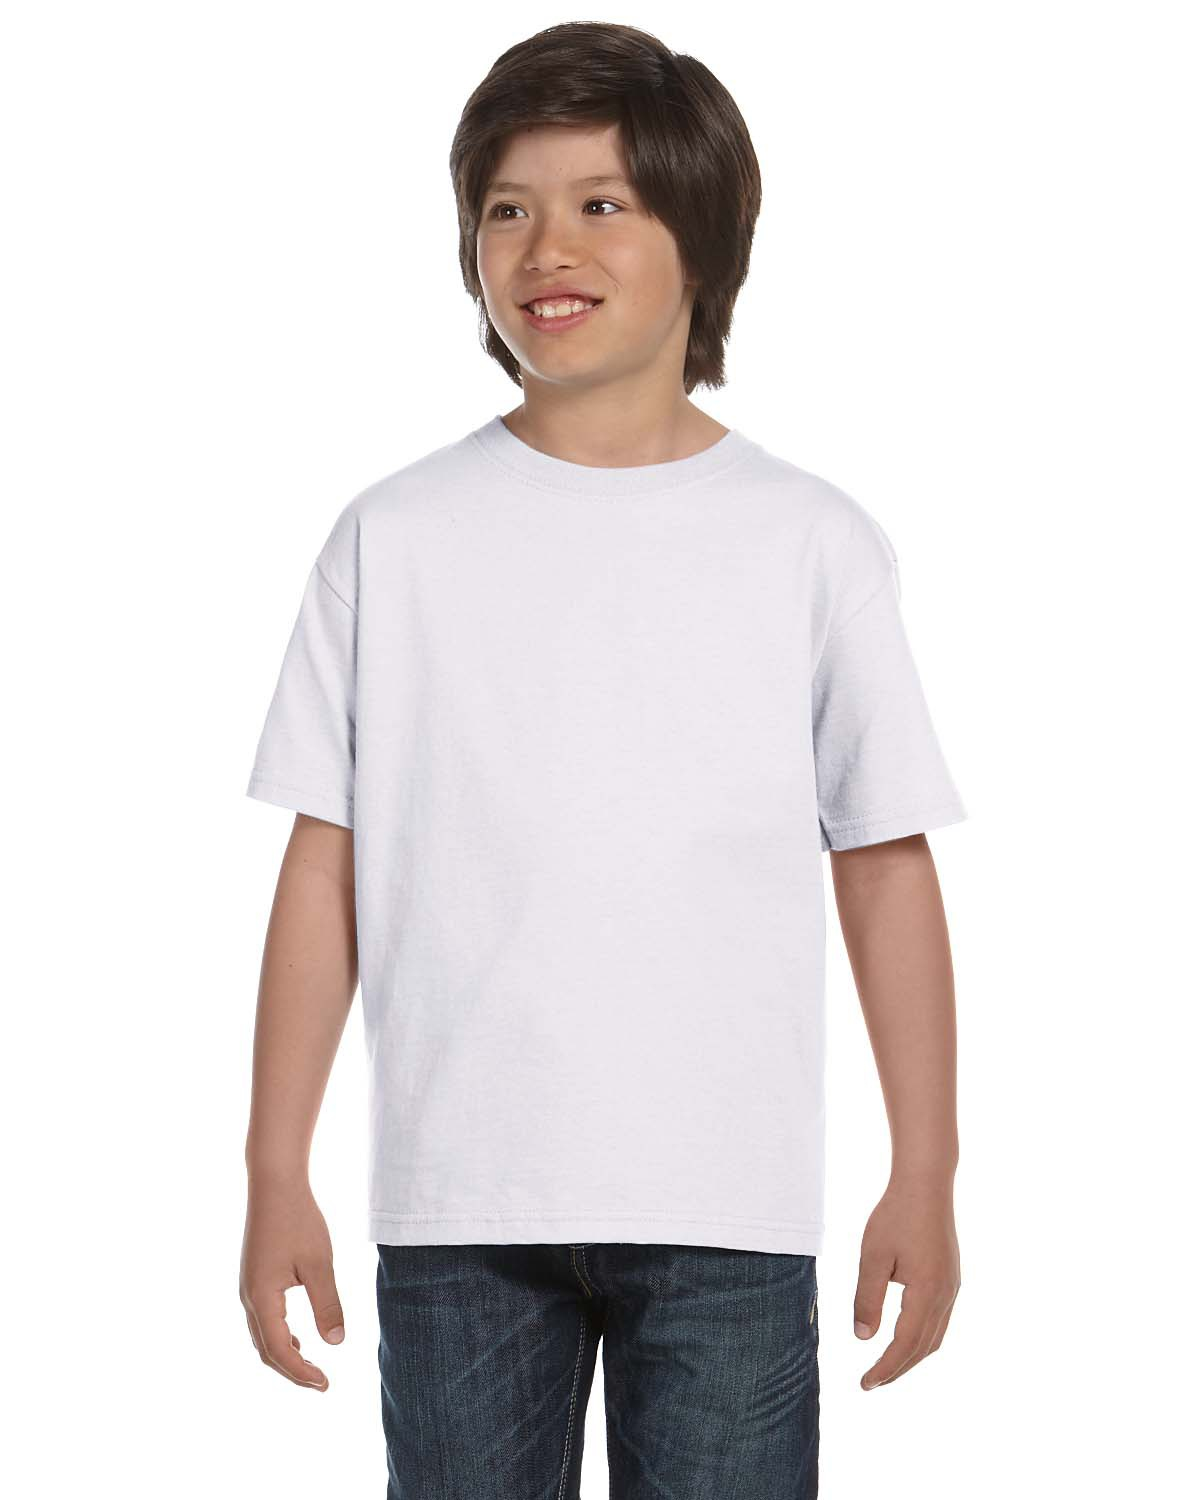 Hanes 5480 - ComfortSoft Heavyweight Youth T-Shirt